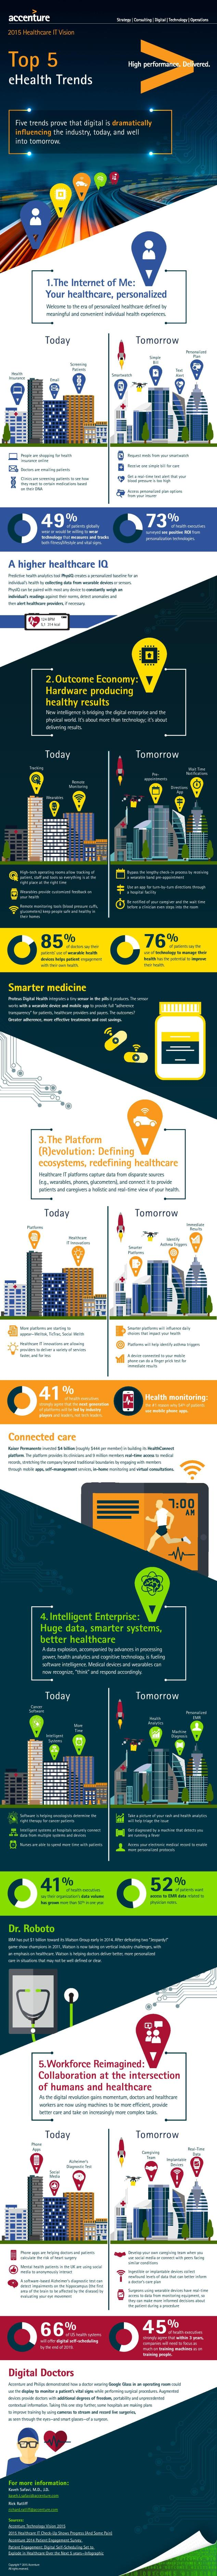 Healthcare_Technology_Vision_2015_Infographic-page-001